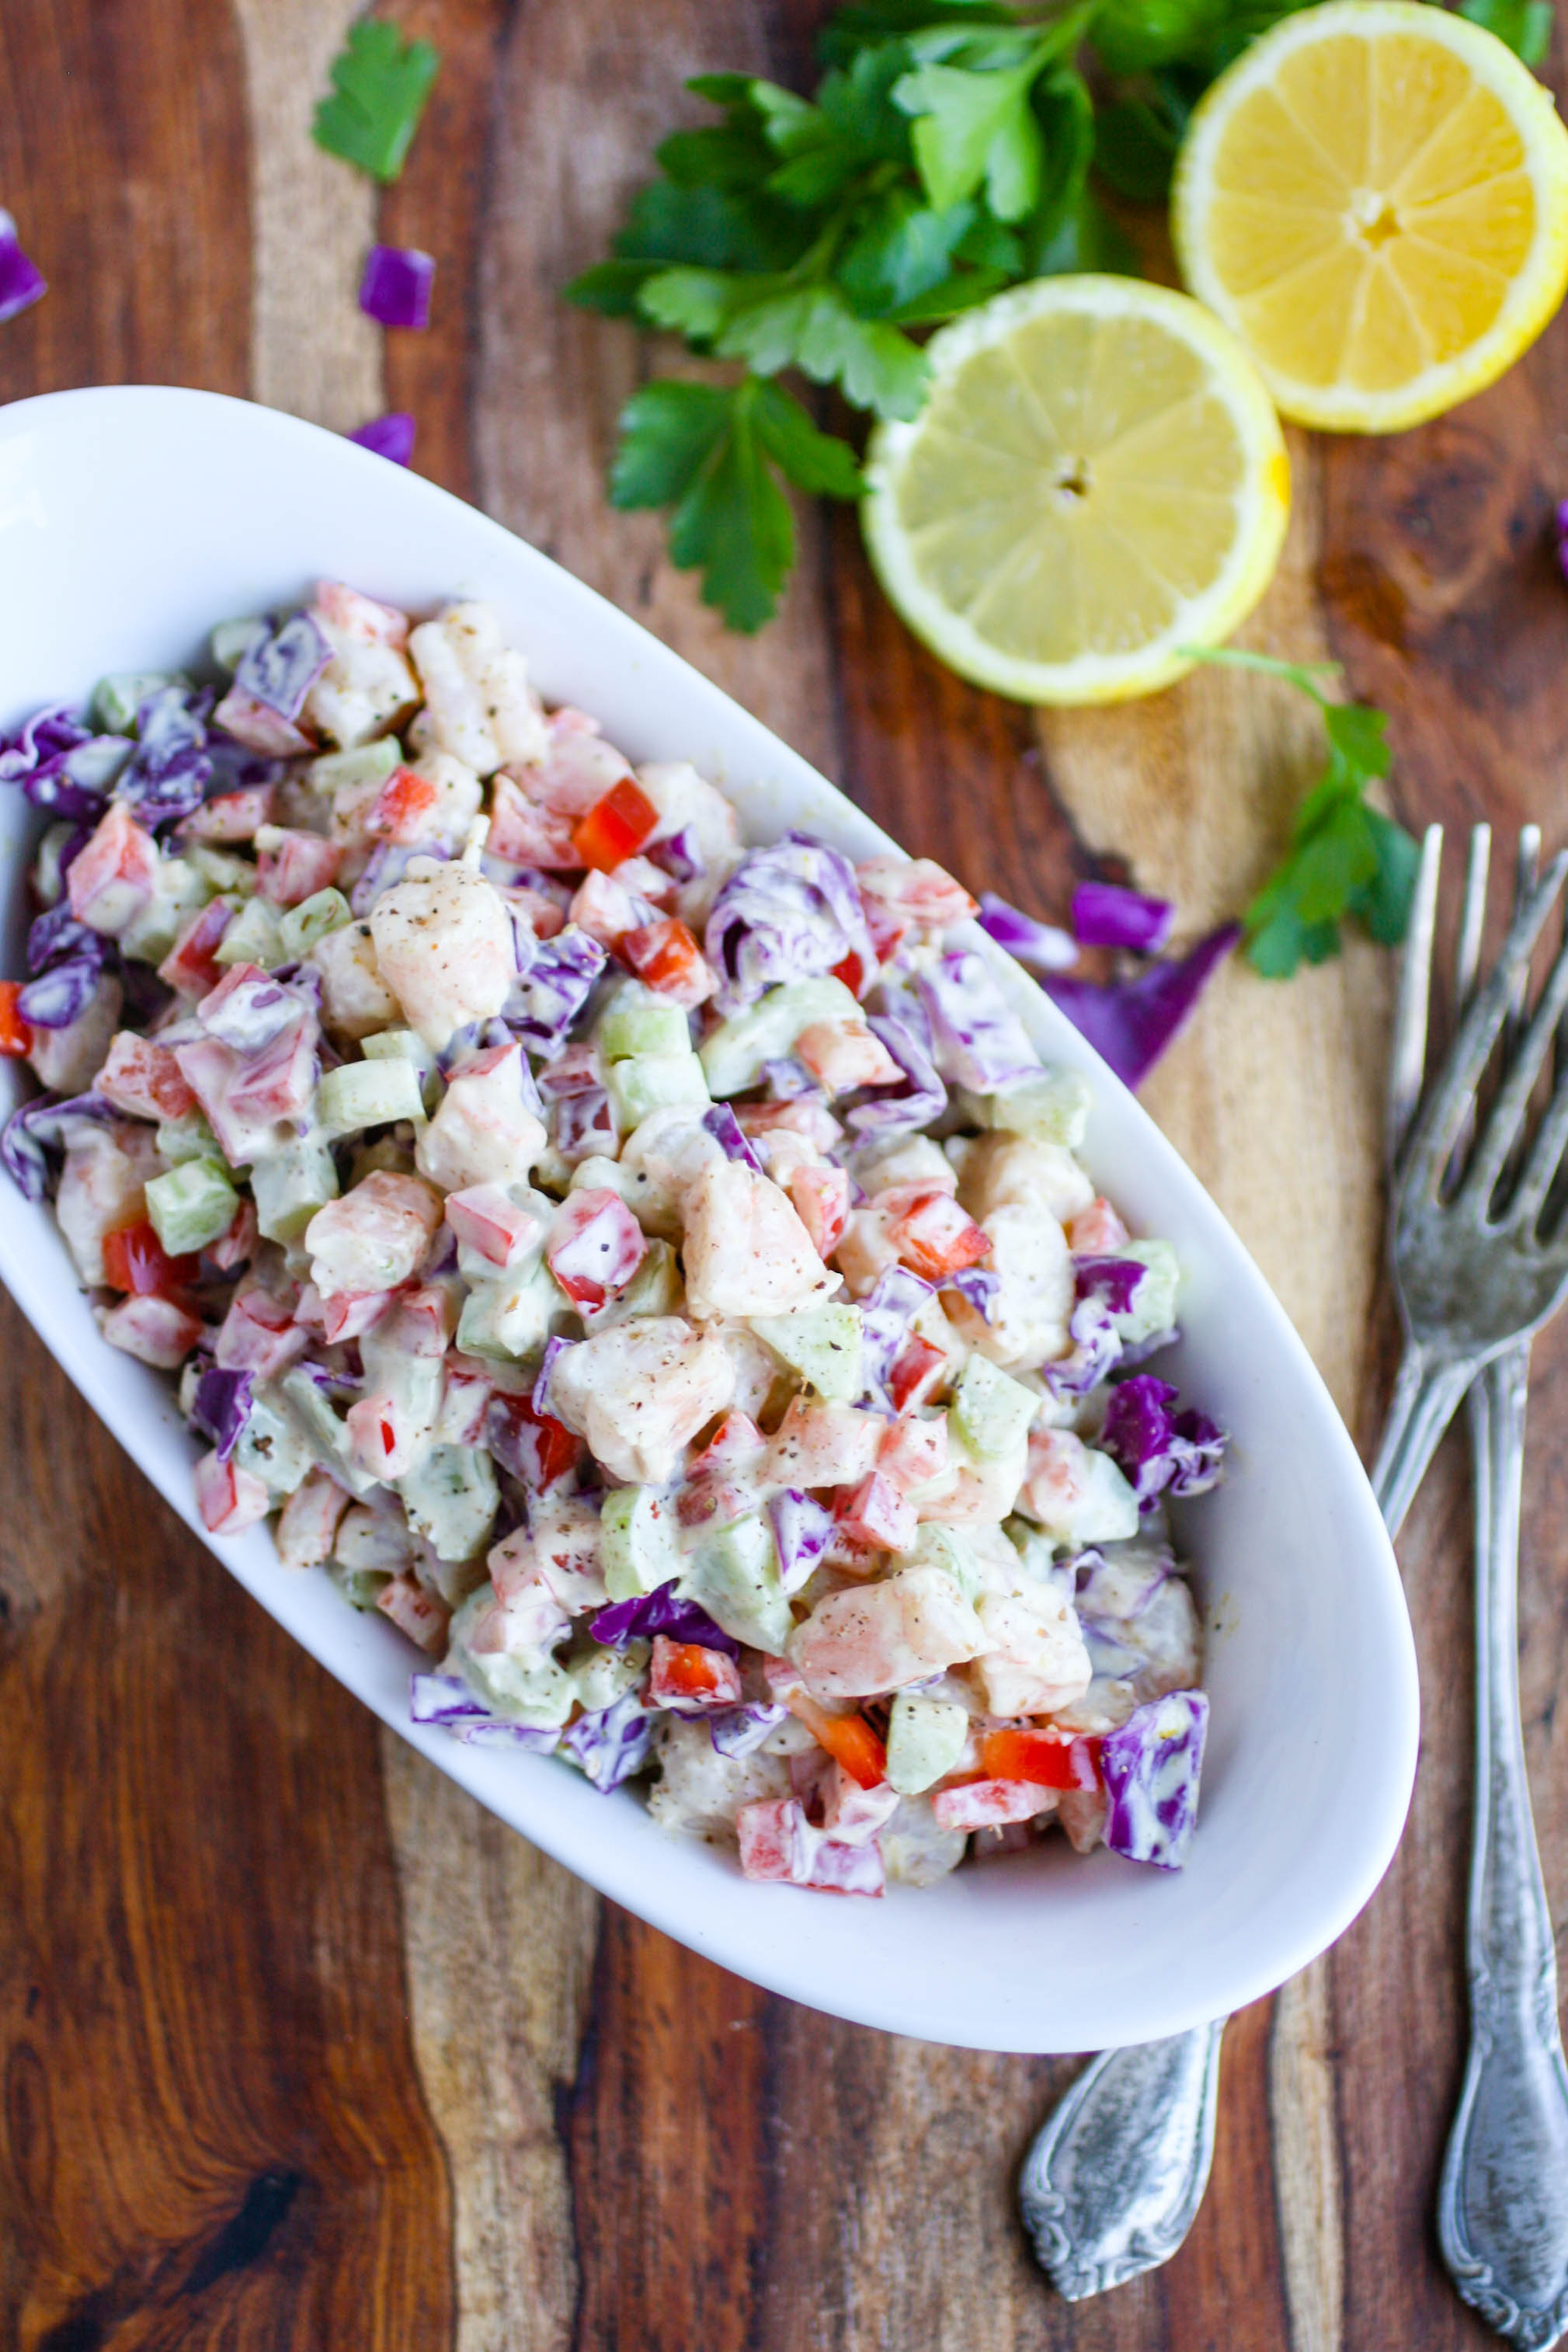 Chopped Shrimp Remoulade Salad is ideal for a flavorful and filling salad. Chopped Shrimp Remoulade Salad makes a great meal any season.